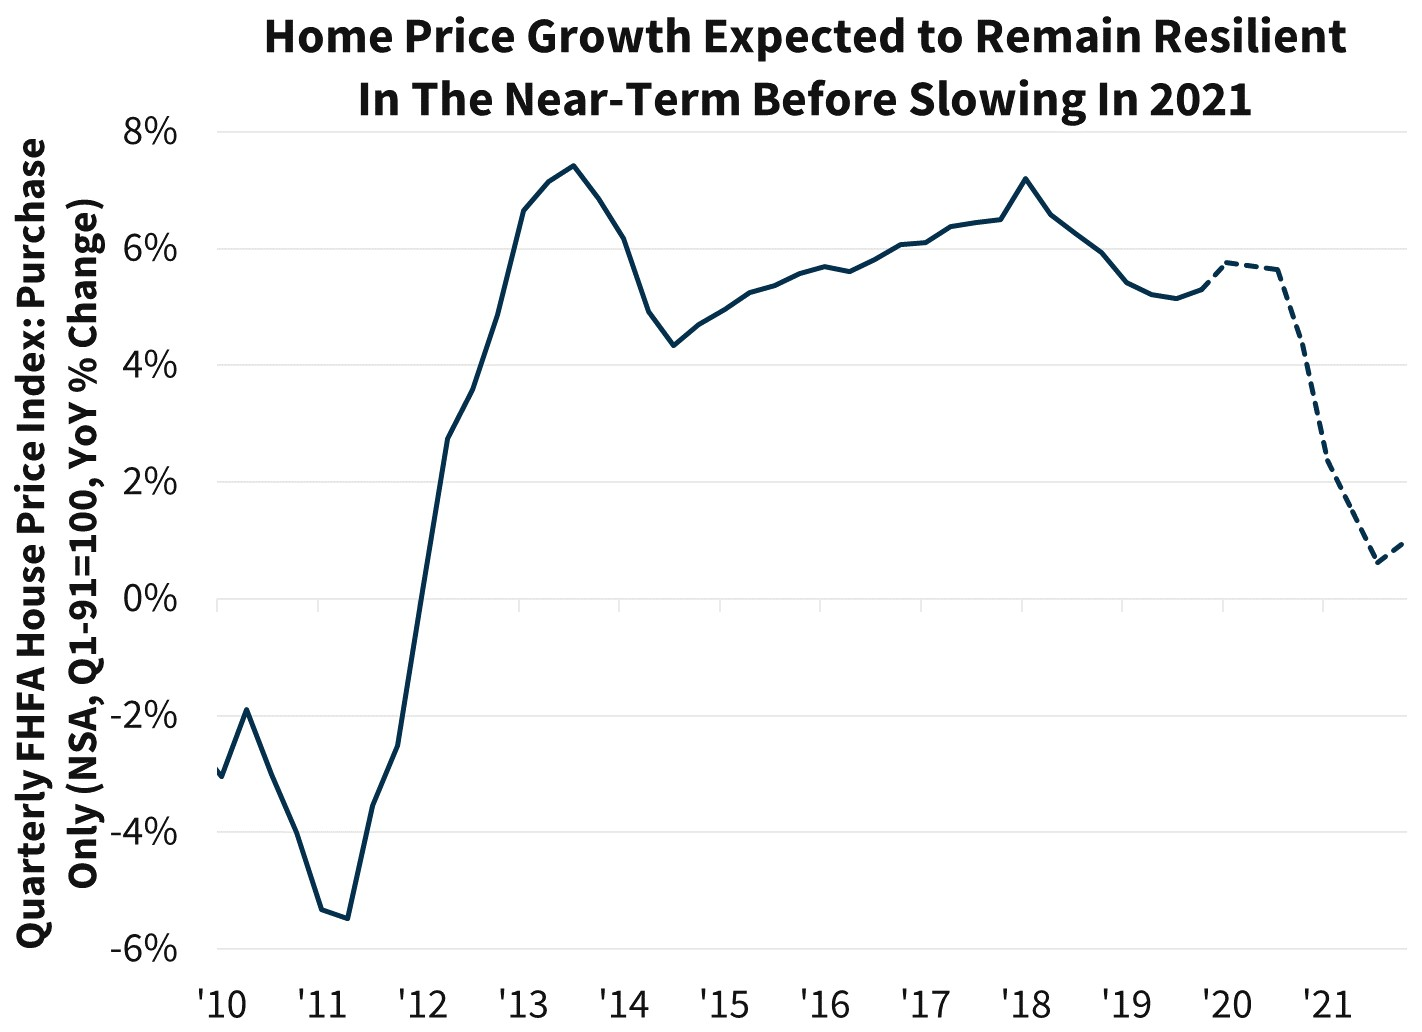 Home Price Growth Expected to Remain Resilient in the Near-Term Before Slowing in 2021